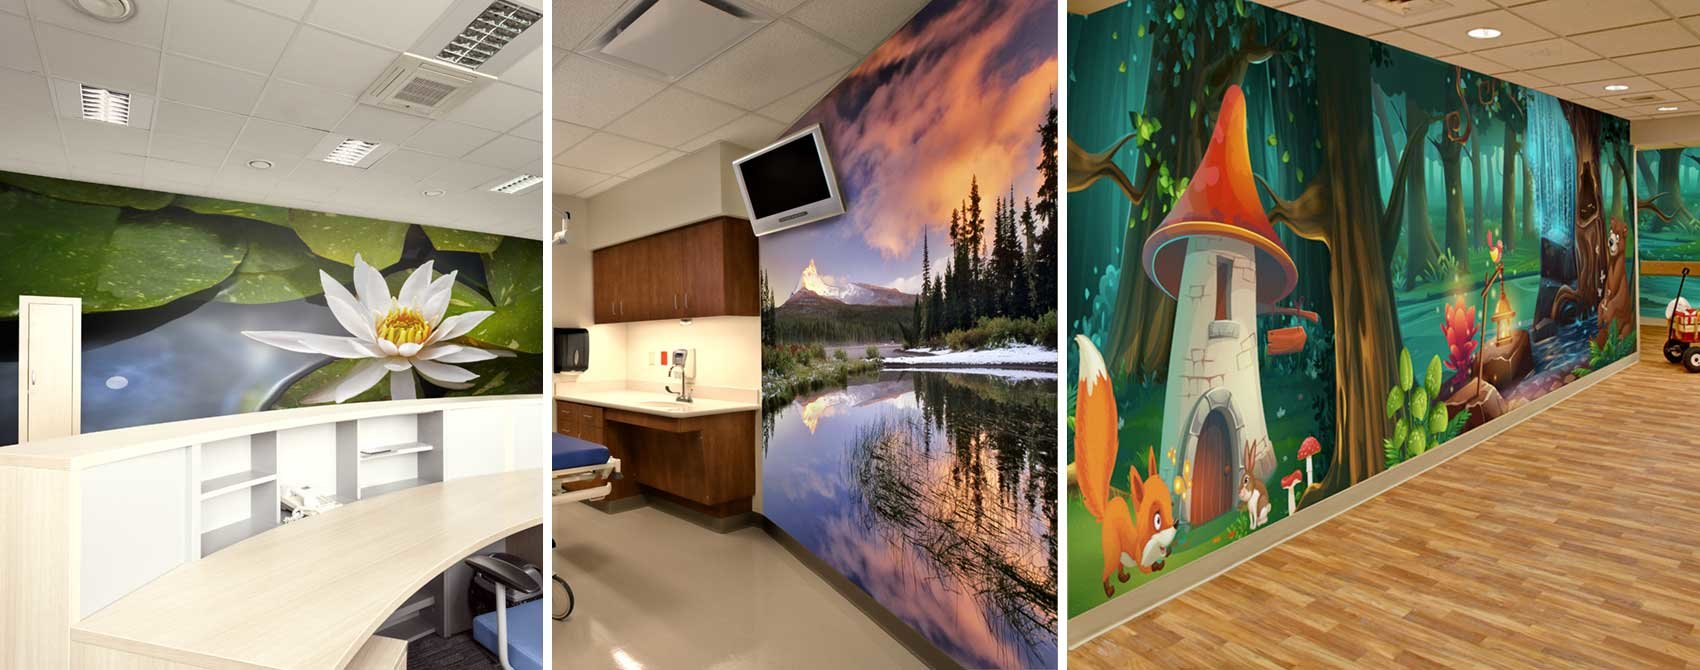 wall murals in health care settings